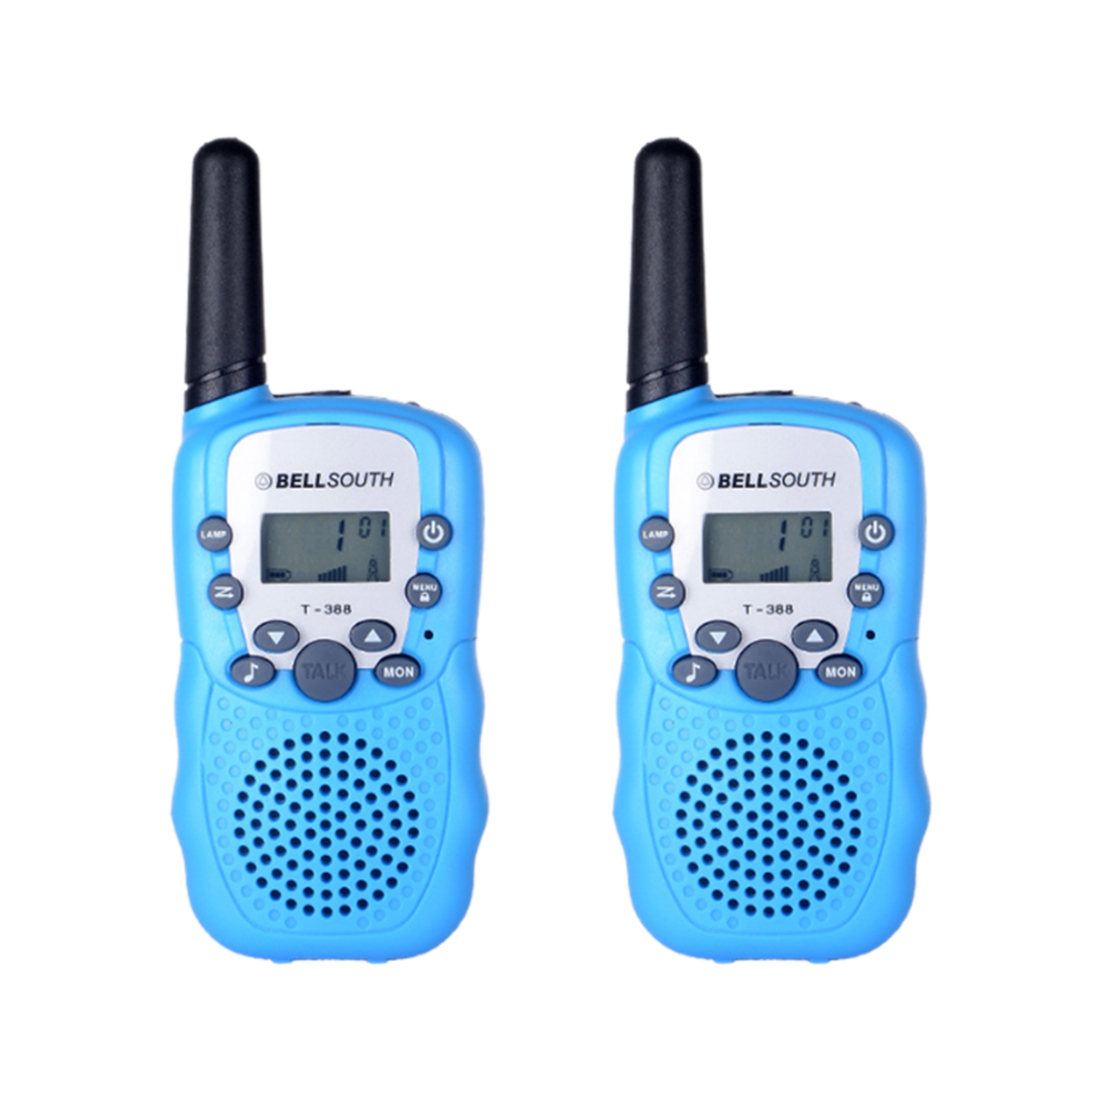 1 Pair Two-Way Walkie Talkie Toys For Children 0.5W Two Way Kids Radio Boys and Girls Brithday Xmas Christmas Gift for kids mini walkie talkie remote walkie talkie radio call radio communicator walkie talkie toys for boys toys for children juguetes